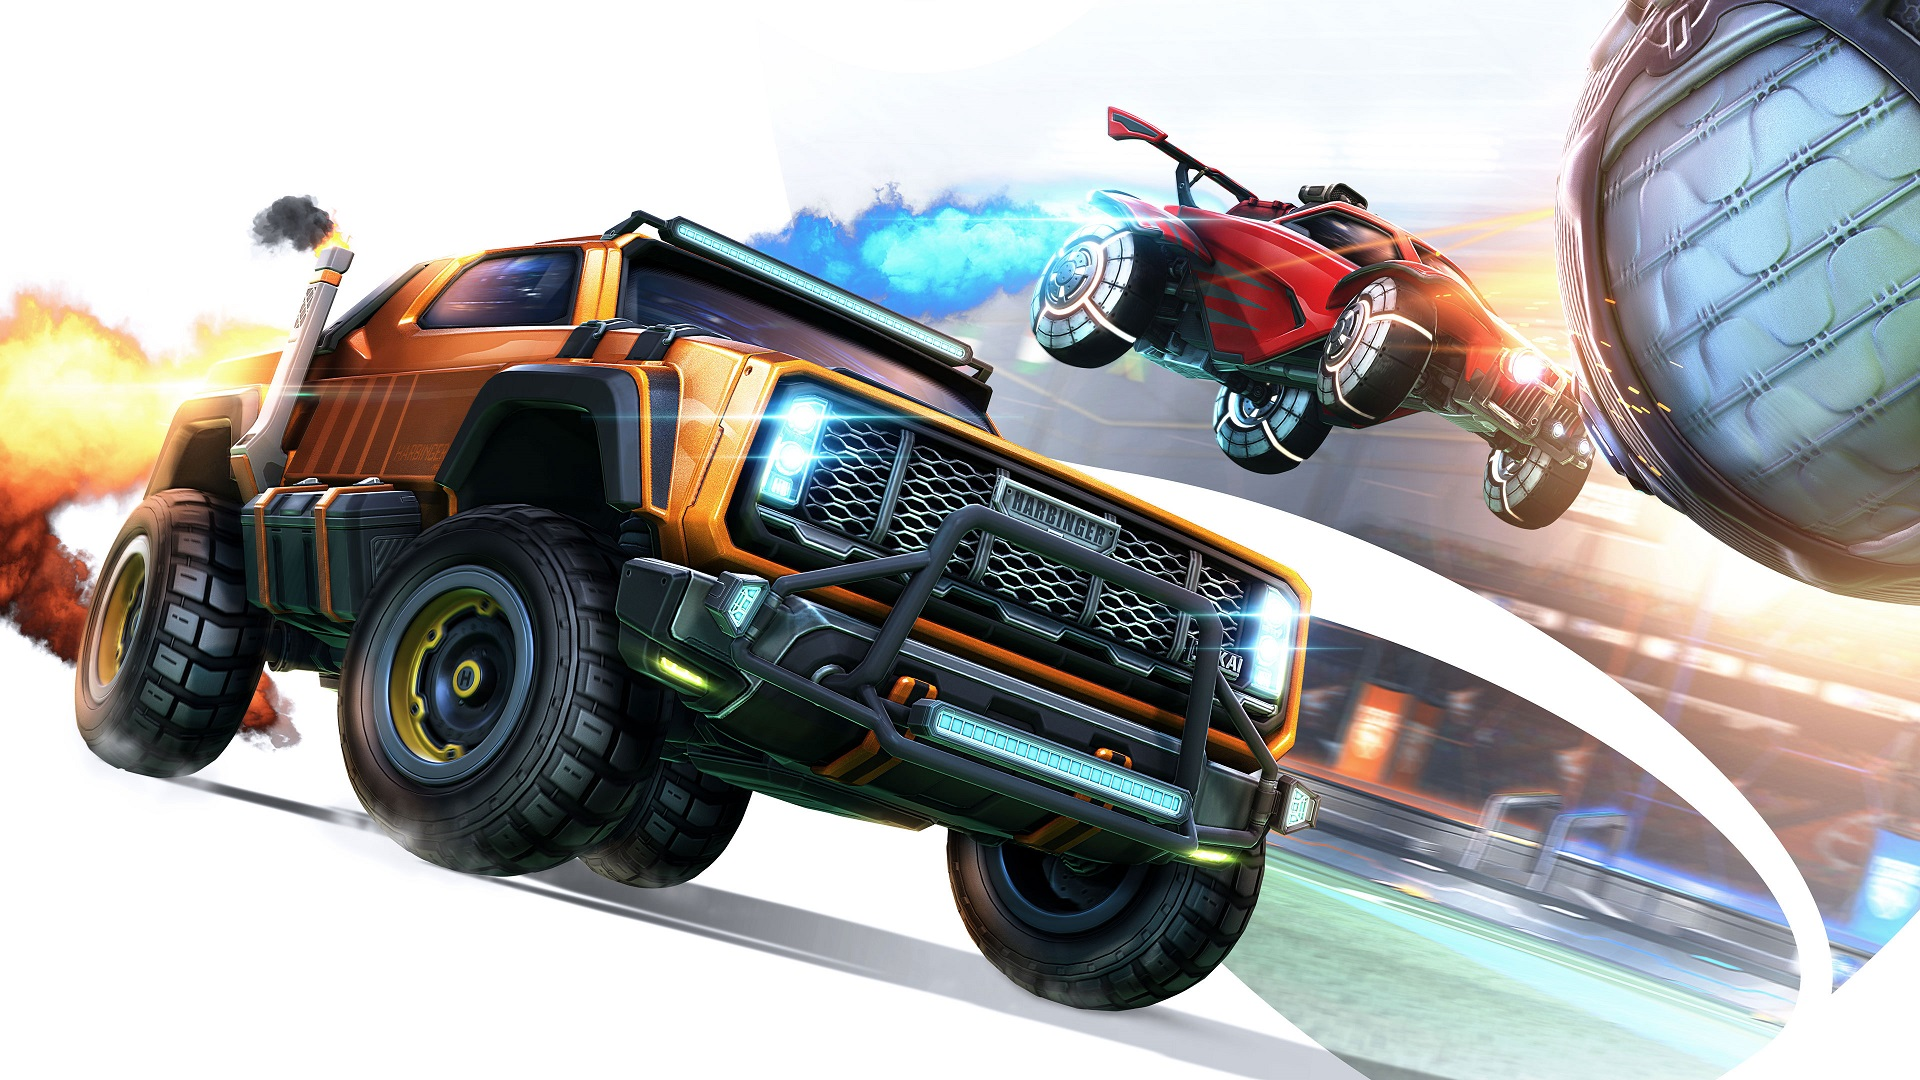 Rocket League's next-gen features are much better on Xbox than PS5